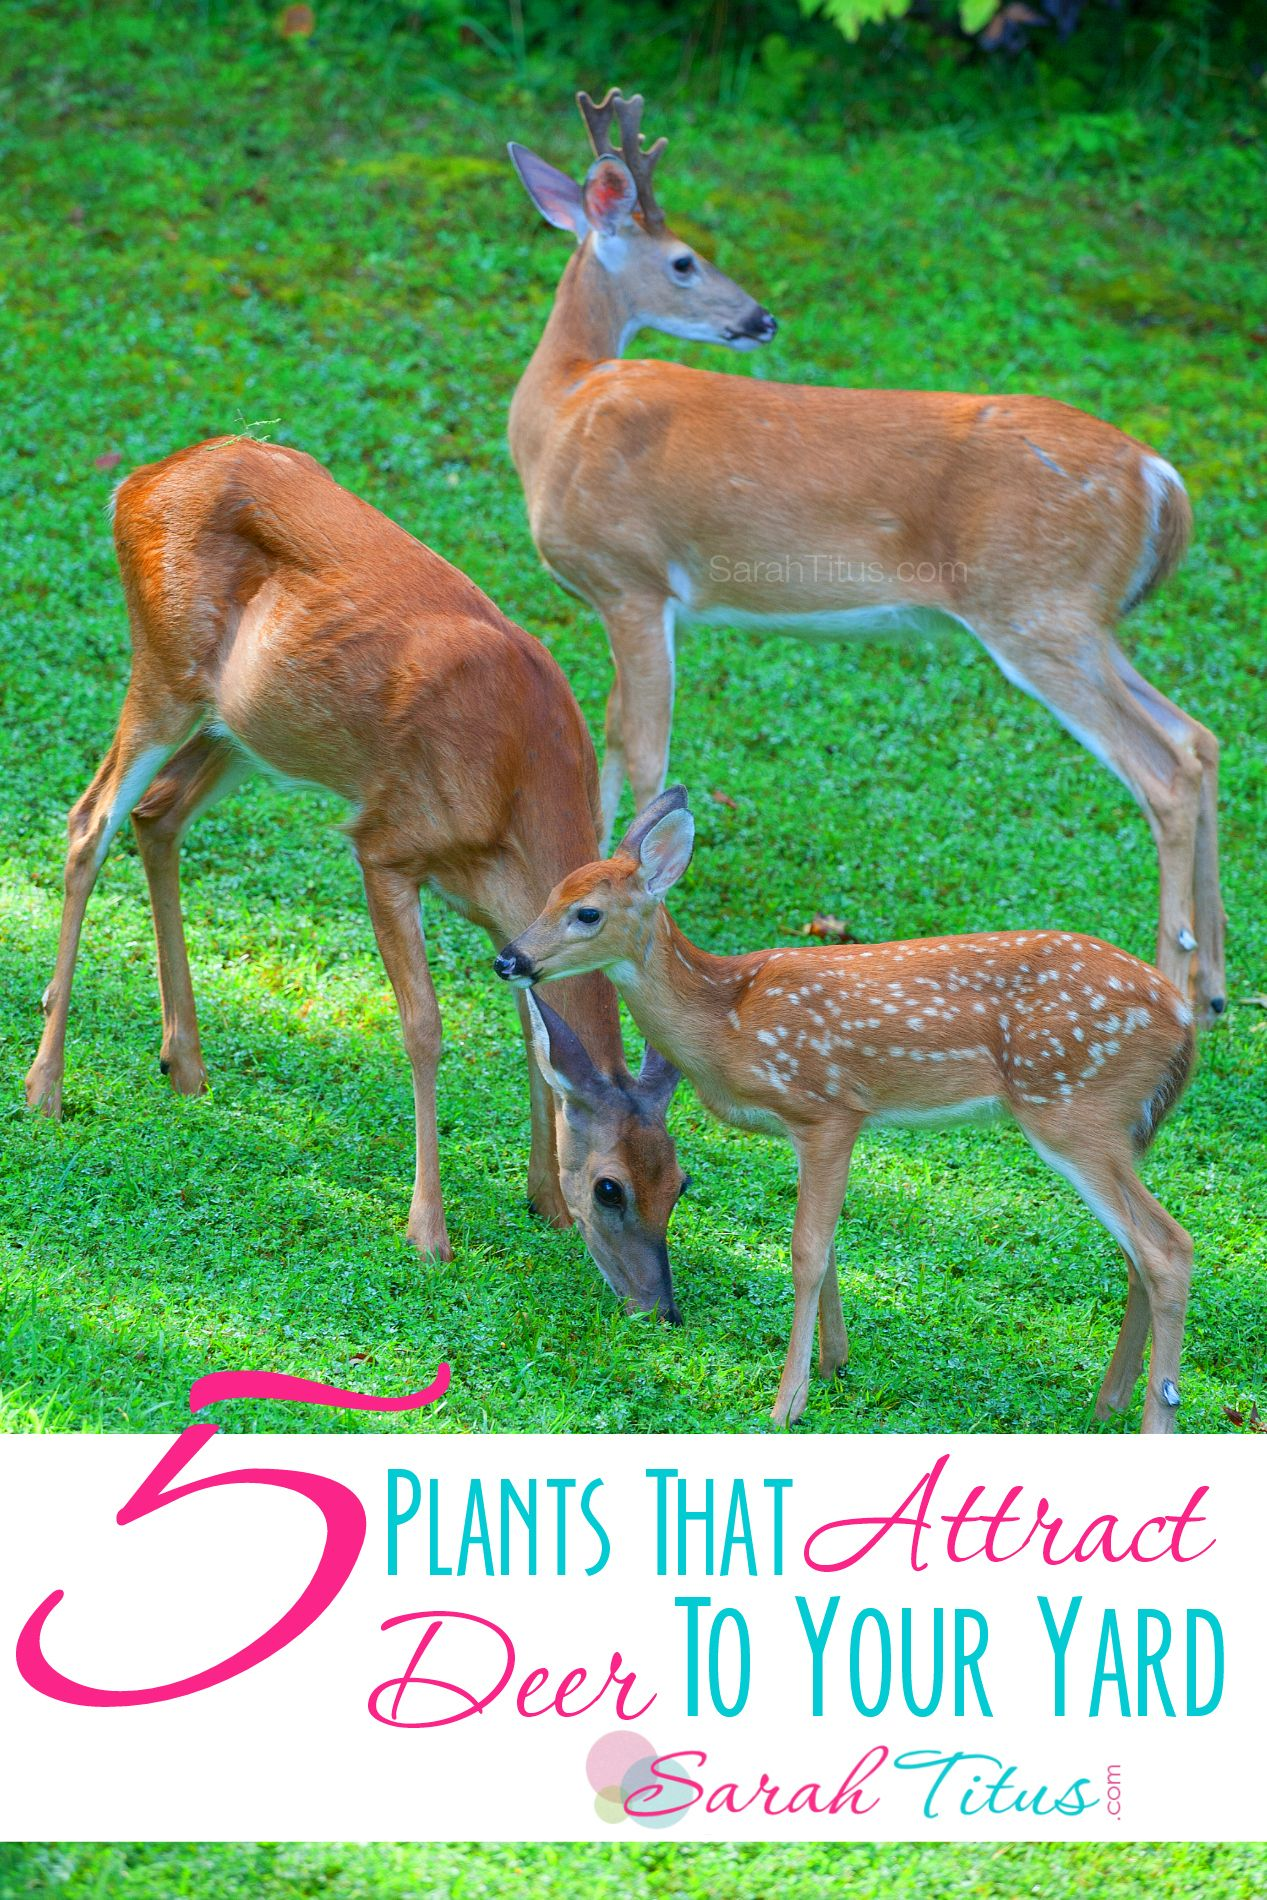 What Can I Feed Deer In My Backyard 5 plants that attract deer to your yard | garden diy | pinterest